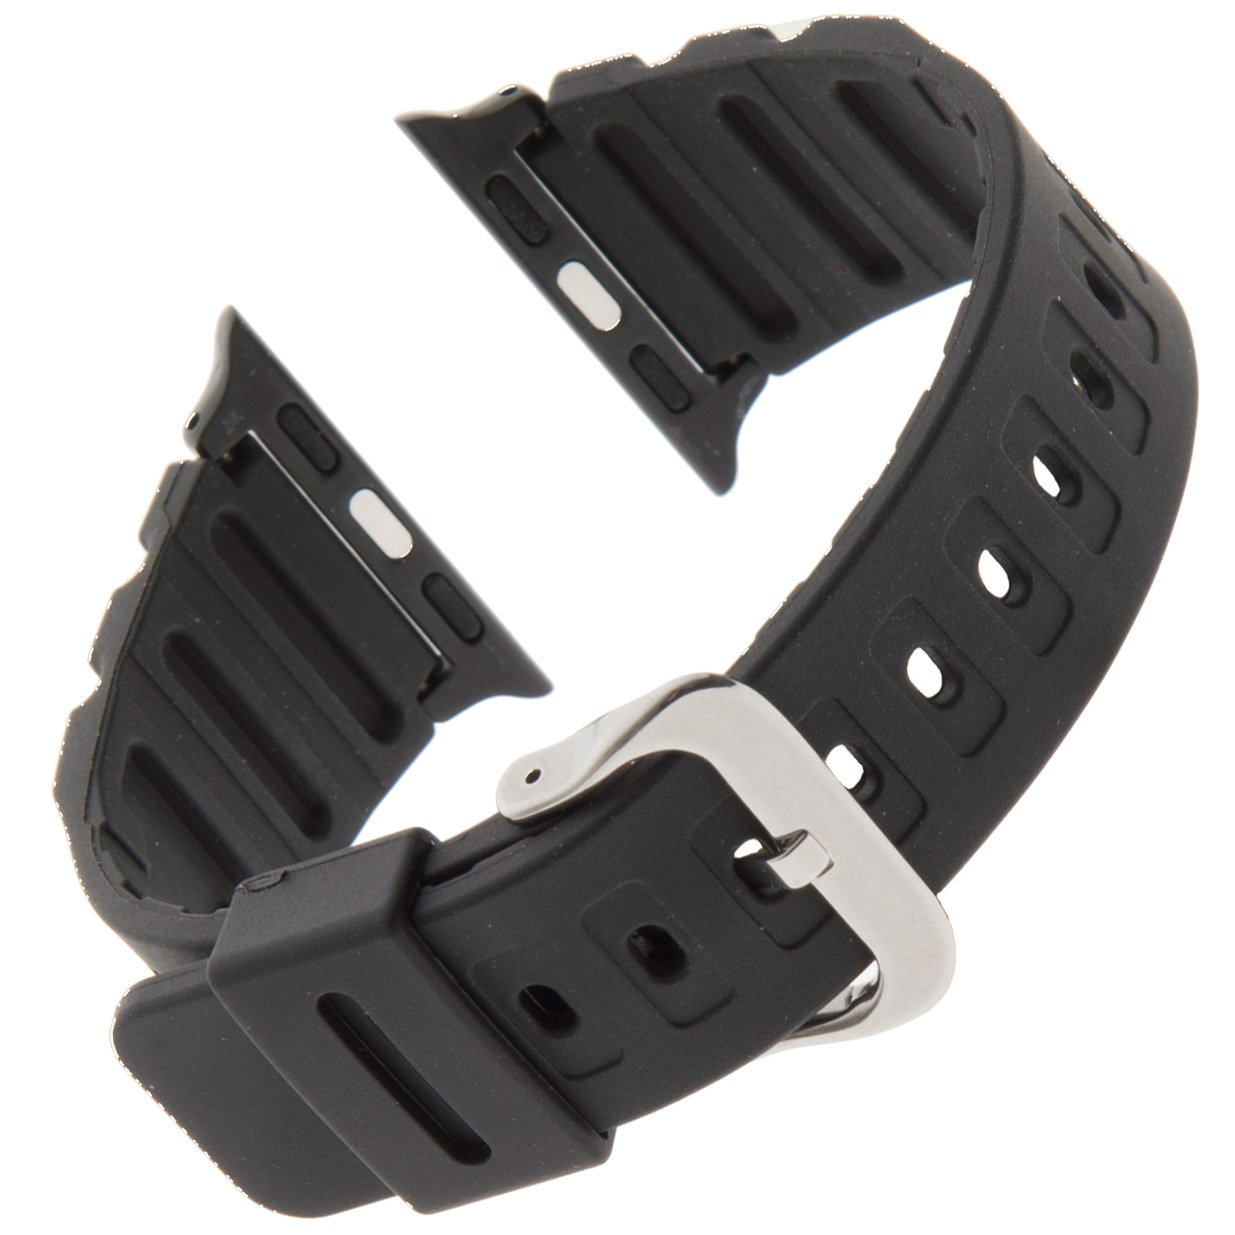 Gilden for Apple 38mm Extra-Long Black Waterproof Polyurethane Watch Band 017270-SMART